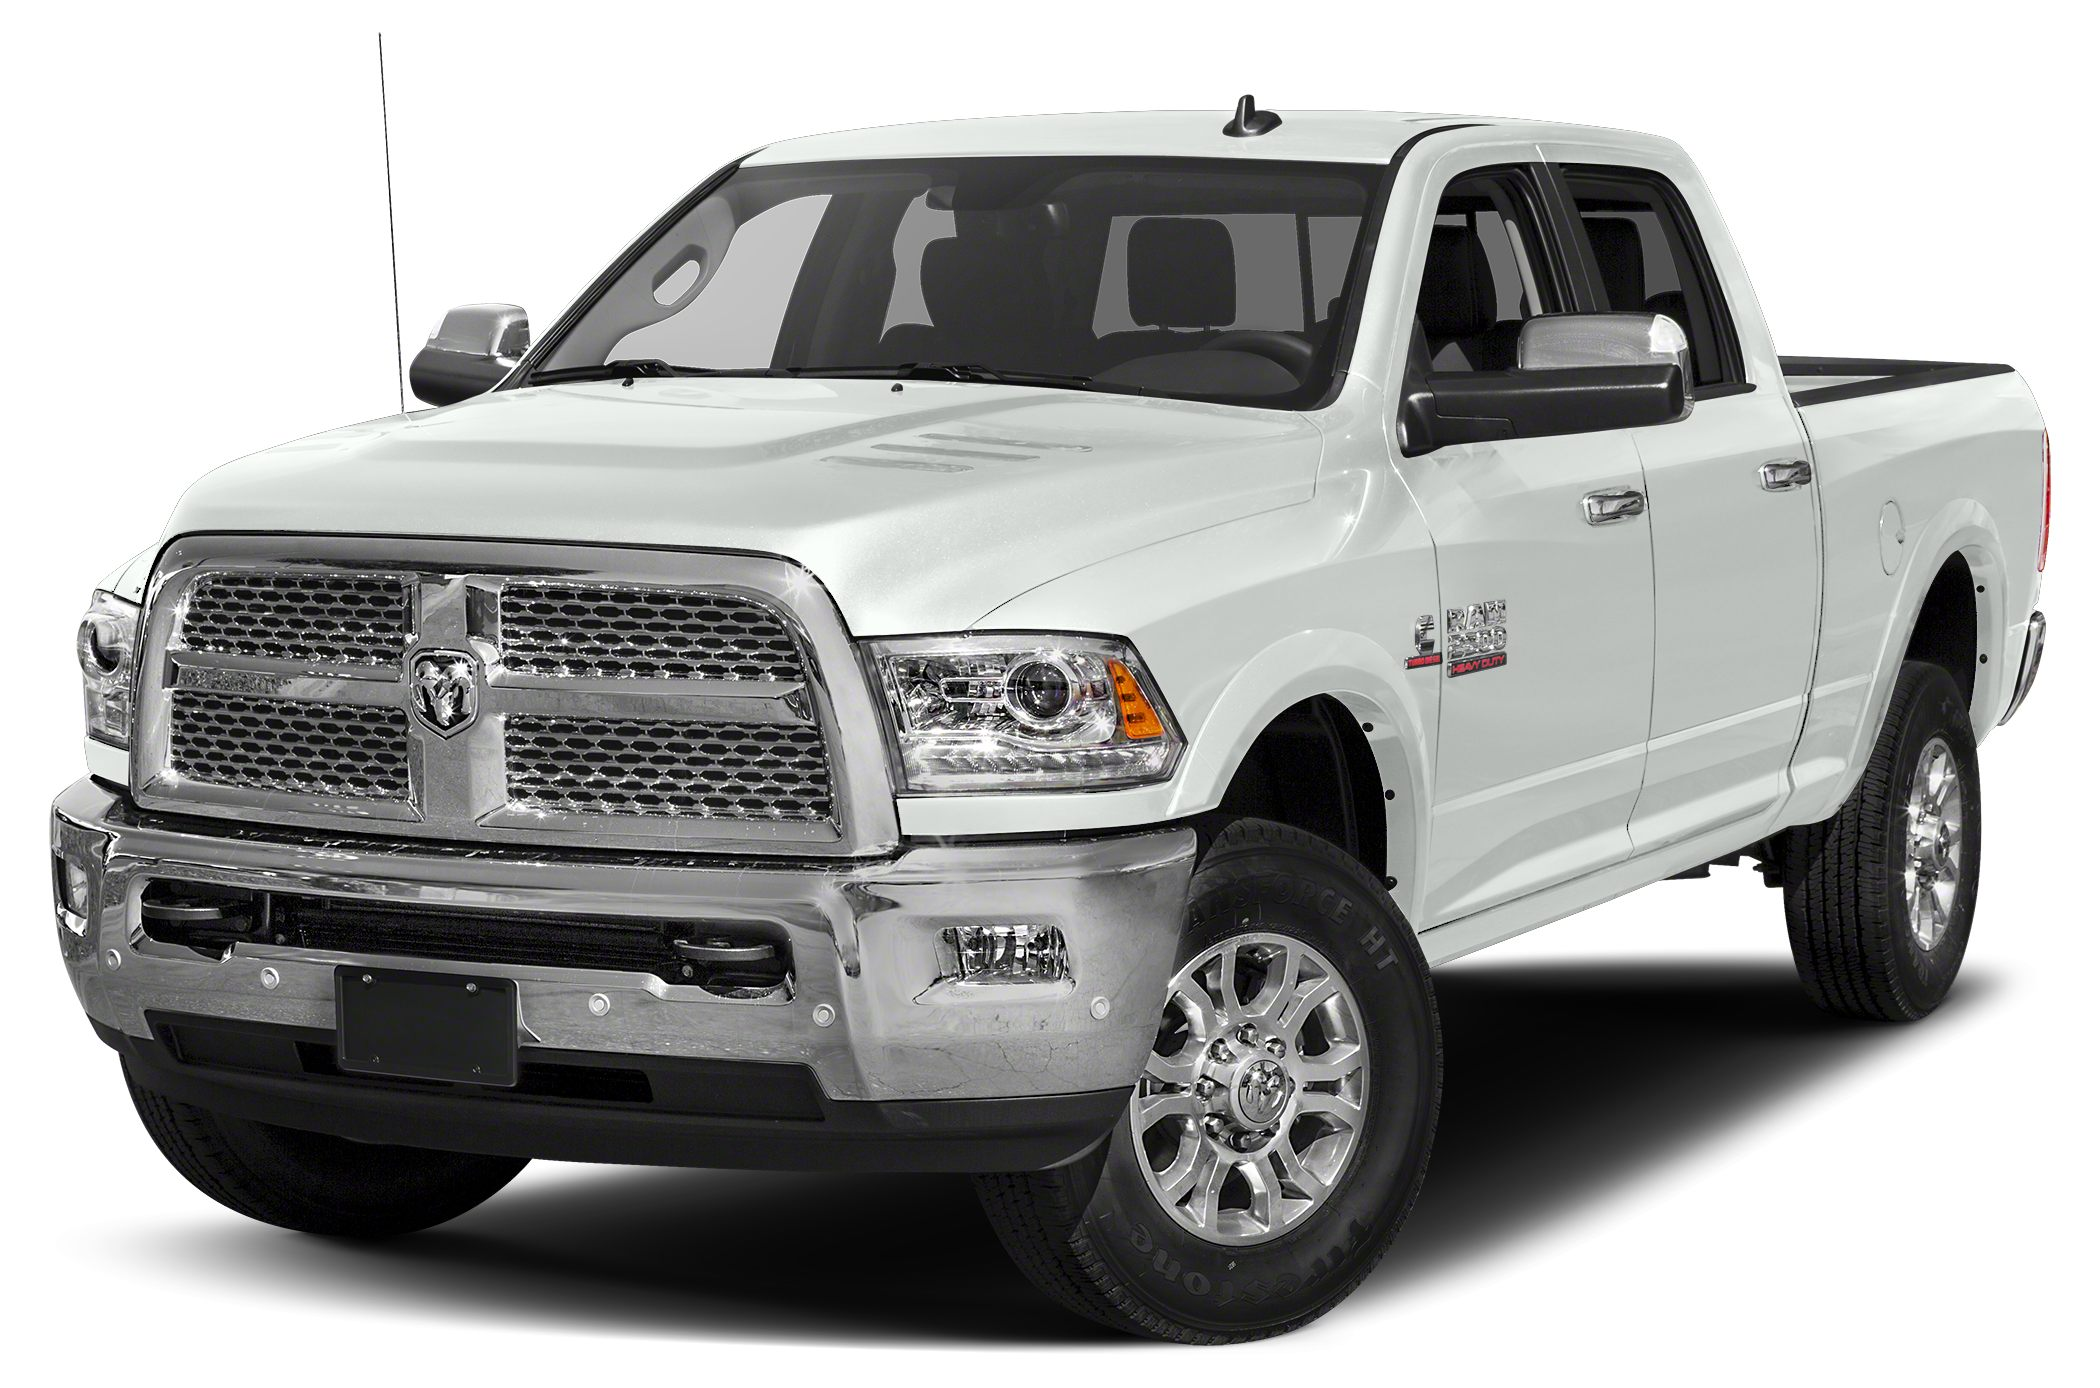 2017 RAM 2500 Laramie 4 Wheel Drive never get stuck again They say All roads lead to Rome but